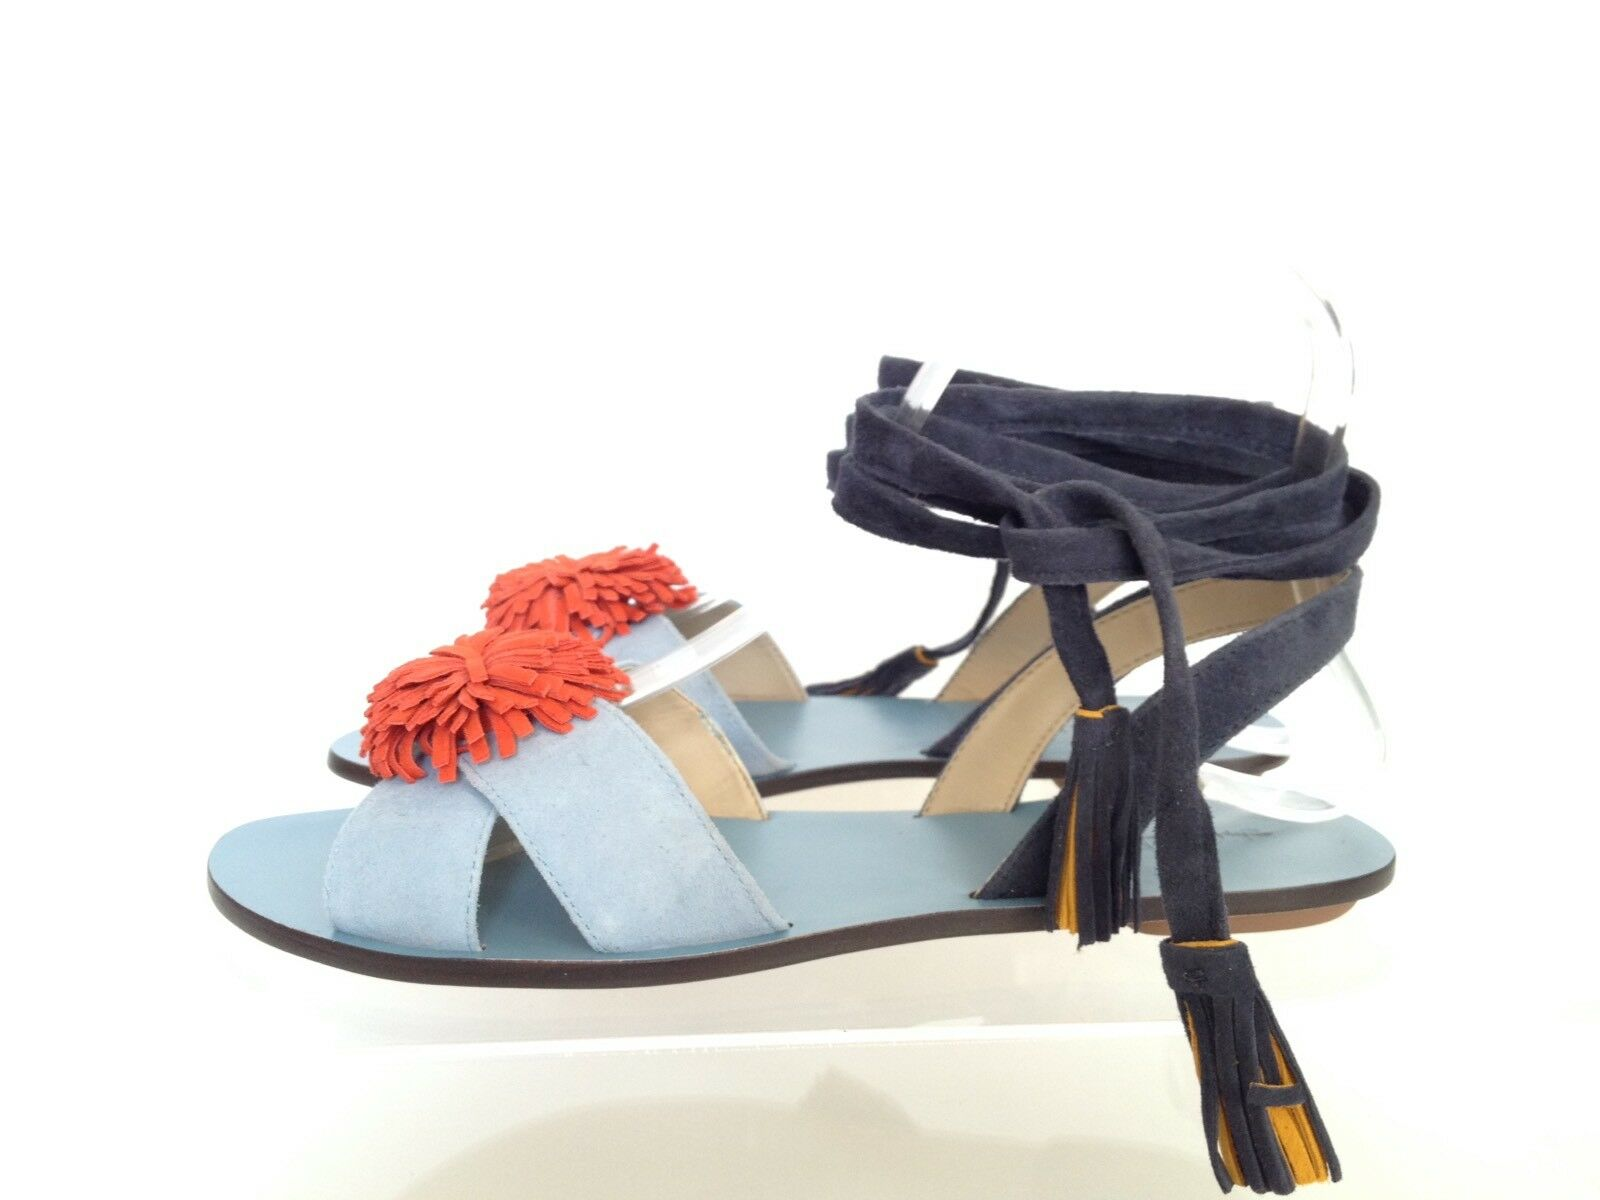 J.CREW Lace-up Suede Sandals with Pom Blue Pom Sz 7 Light Blue Pom Orange g0959  128 727403